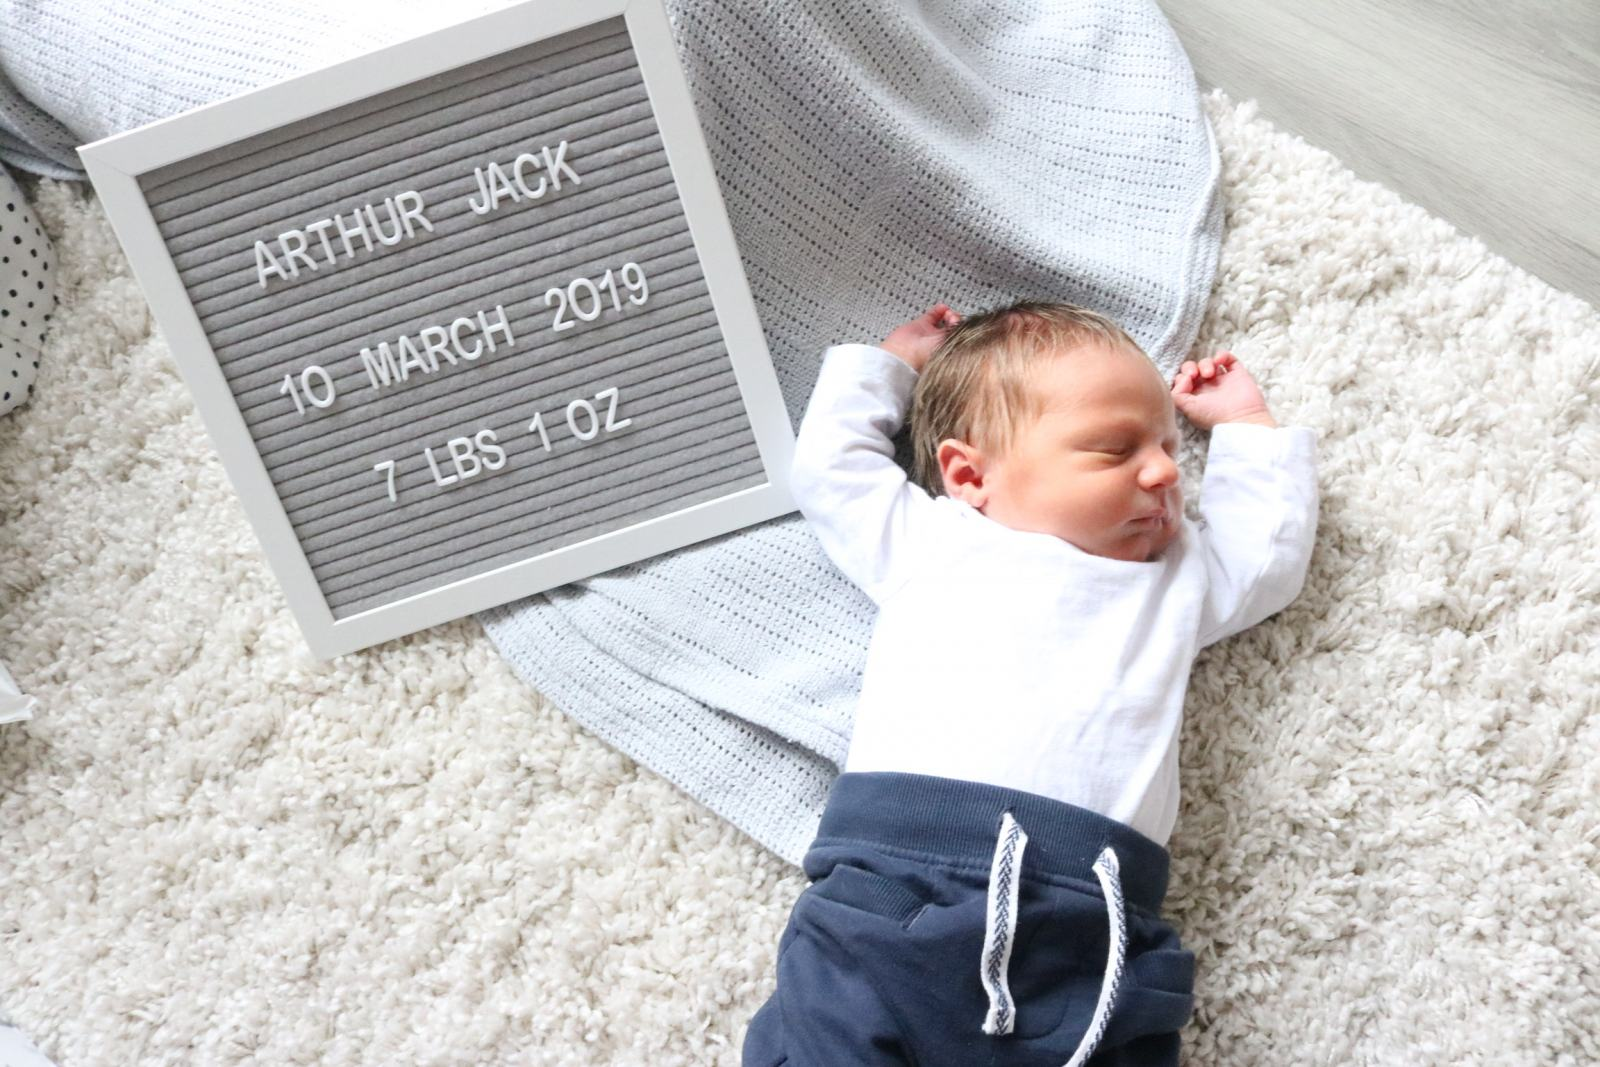 A Newborn baby named Arthur laying on a cream shaggy rug next to a sign with his date of birth and weight.